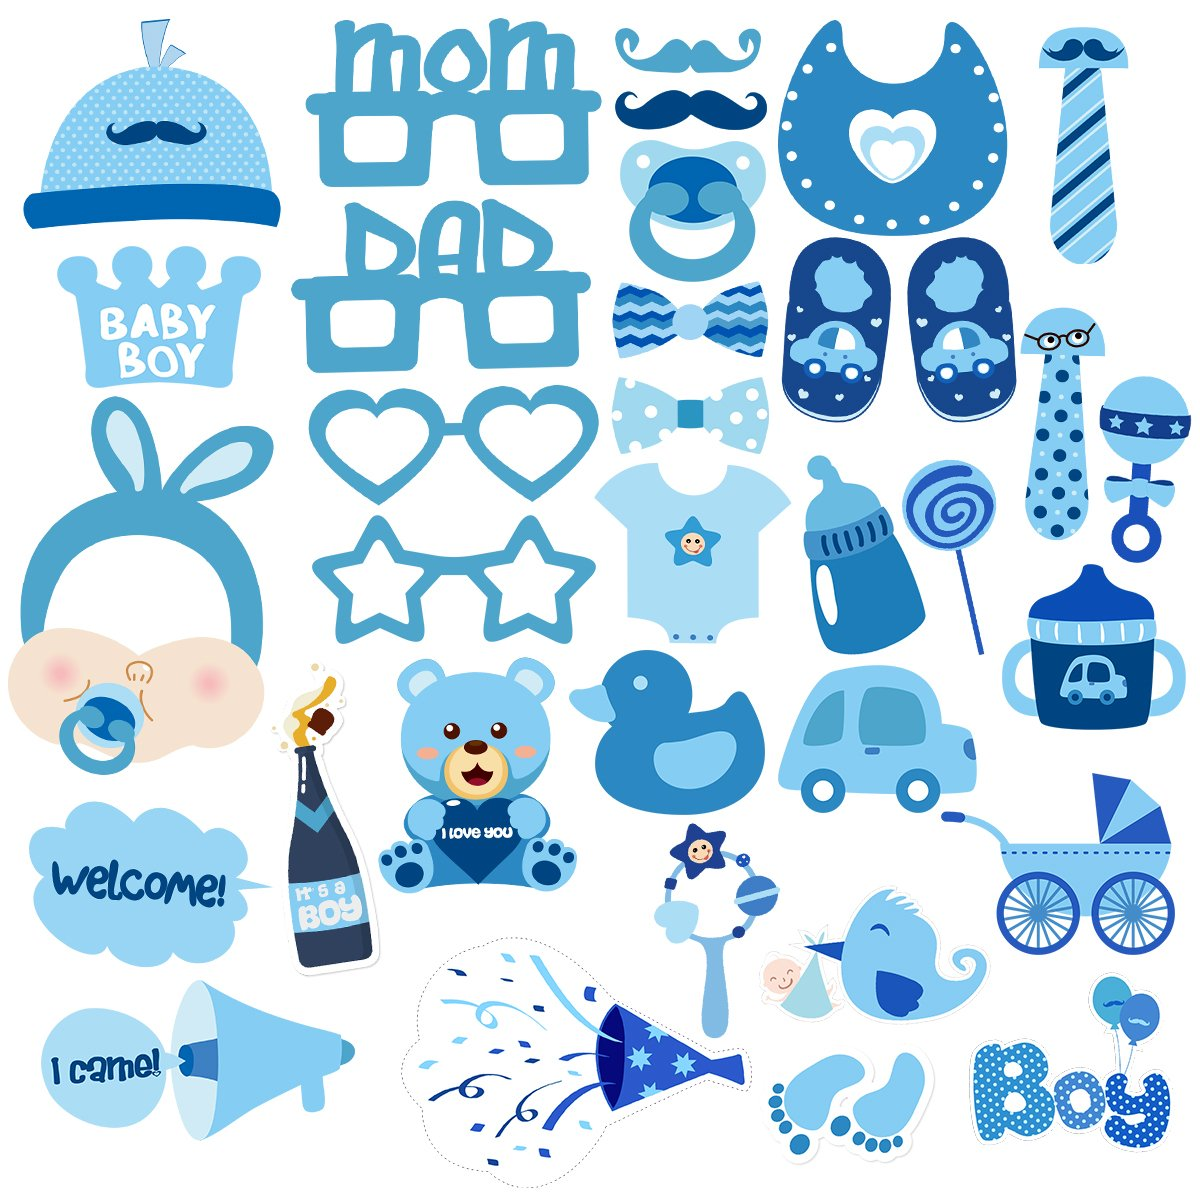 BESTOYARD Baby Shower Photo Props Baby Bottle Masks Photobooth Props It's A Boy Baby Shower Party Photo Booth Props Kits Party Decorations 34pcs